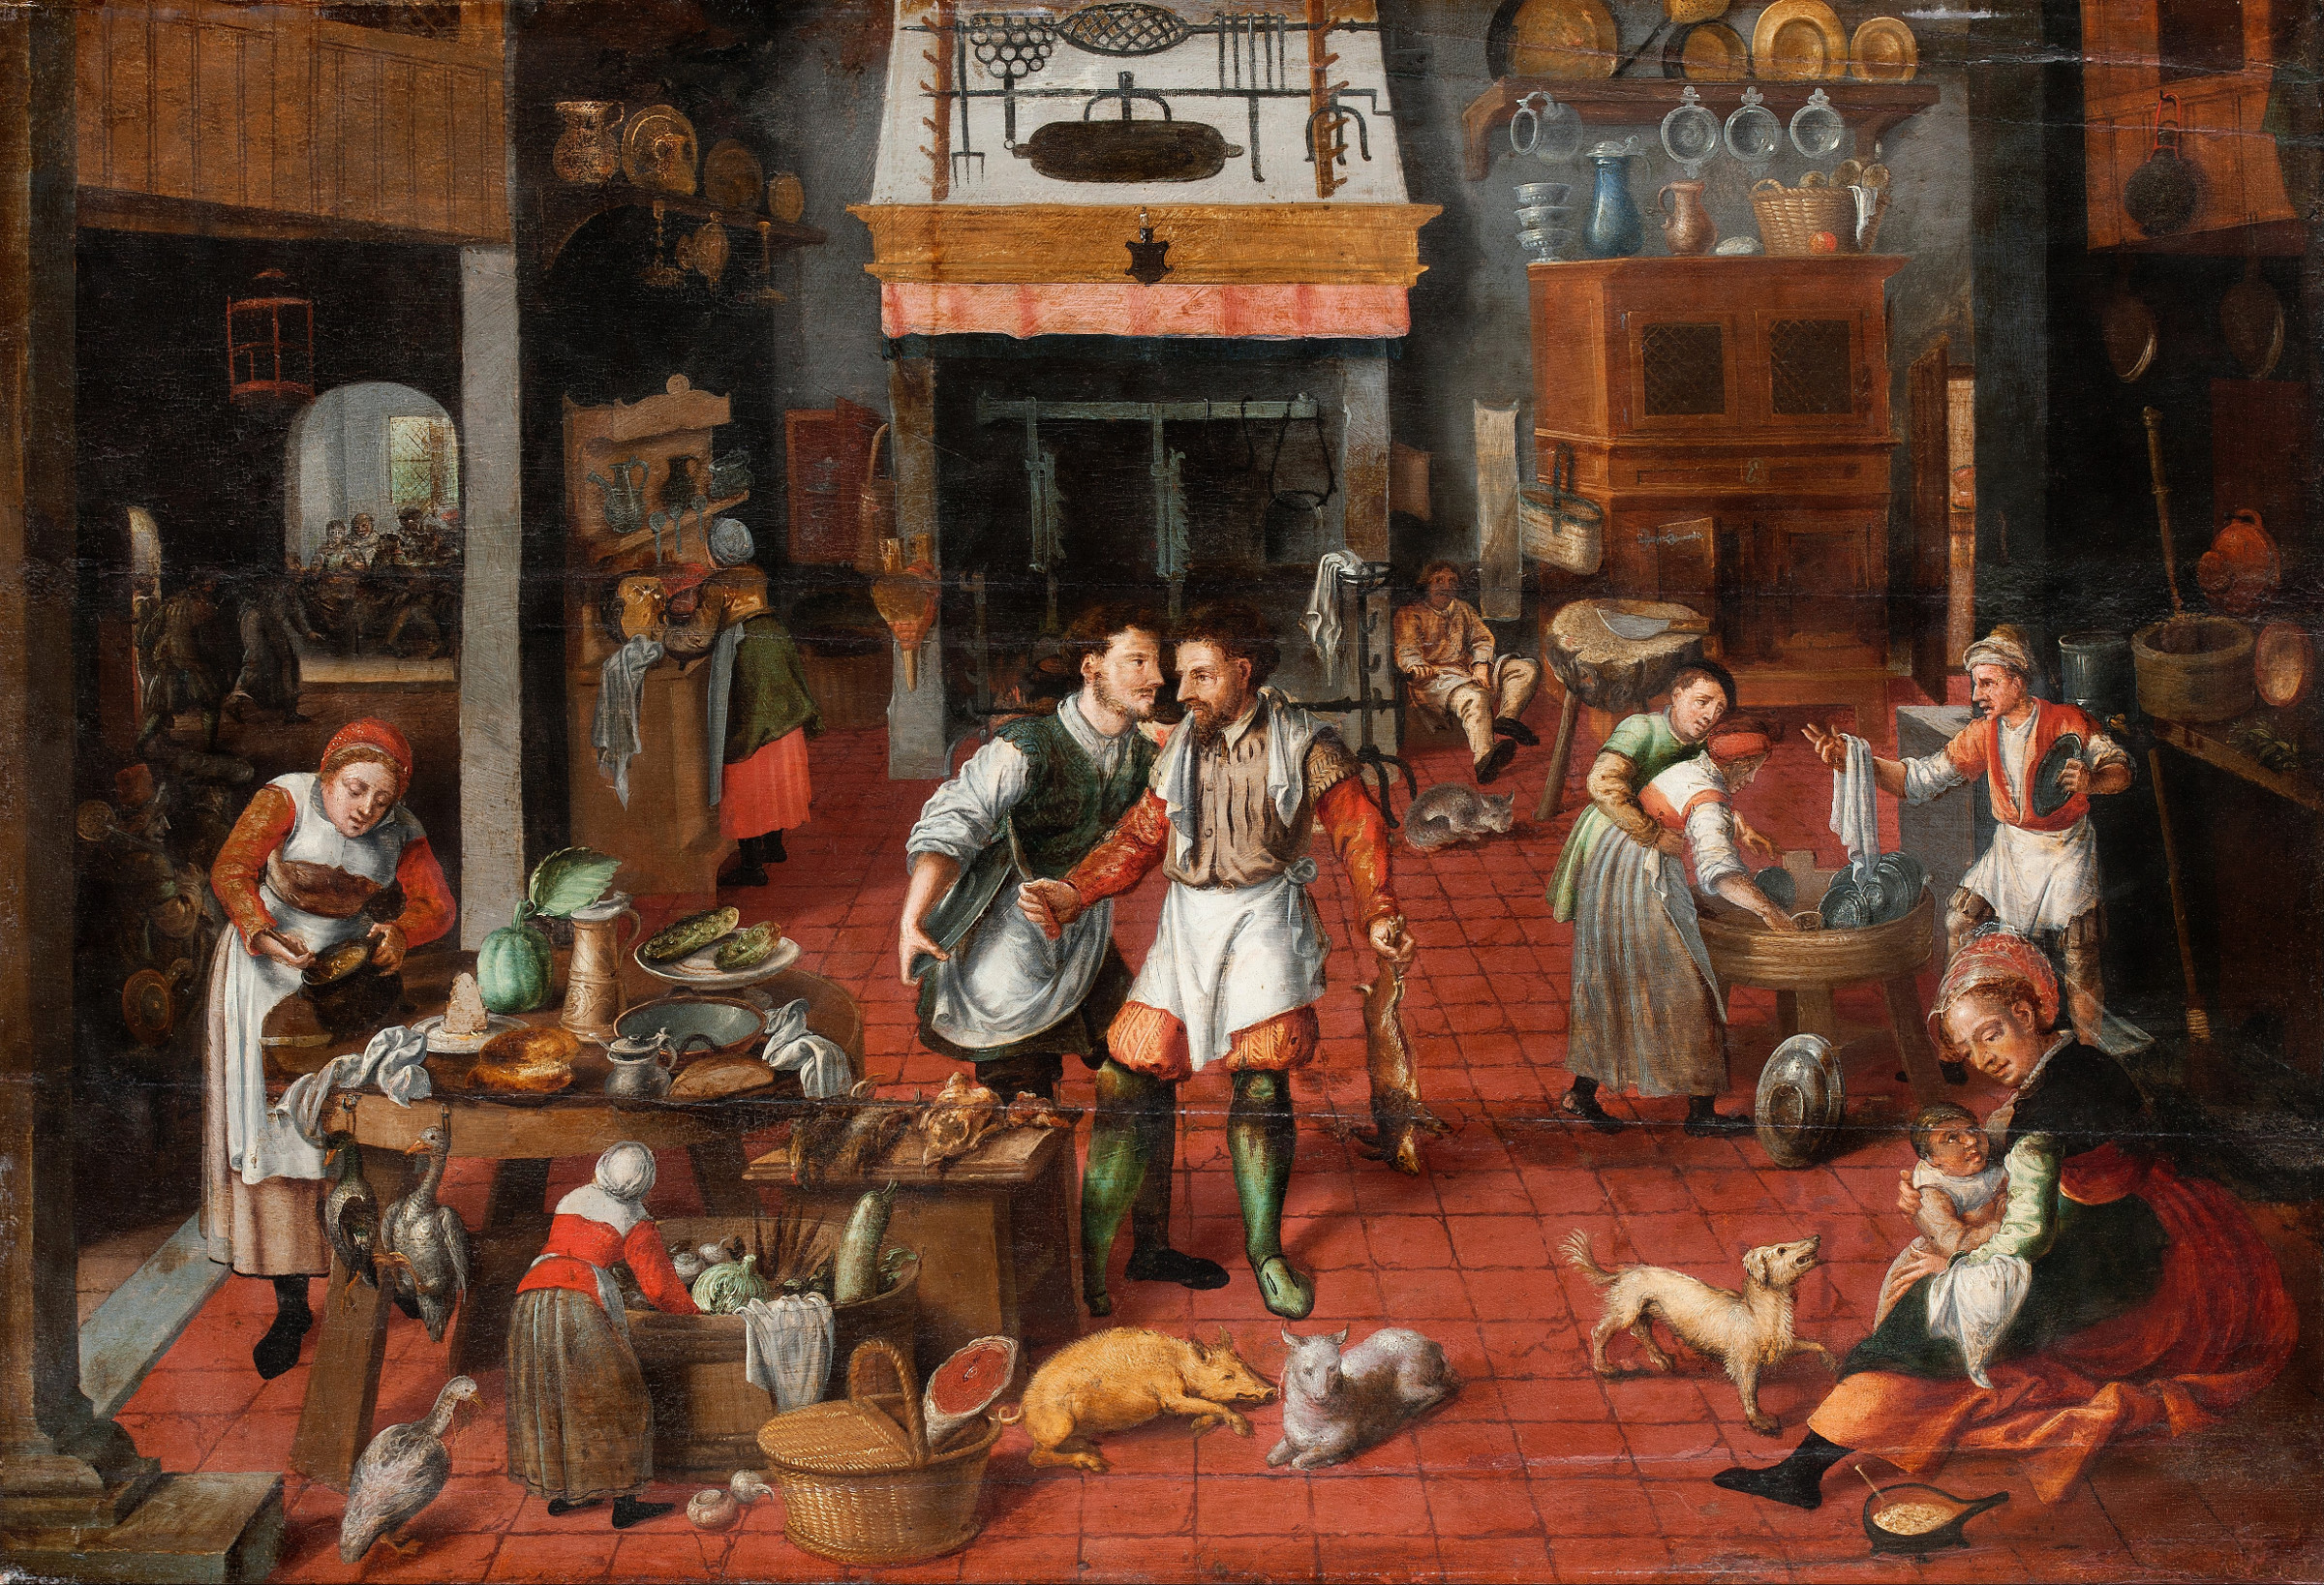 Kitchen Interior attributed to Marten van Cleve 1565